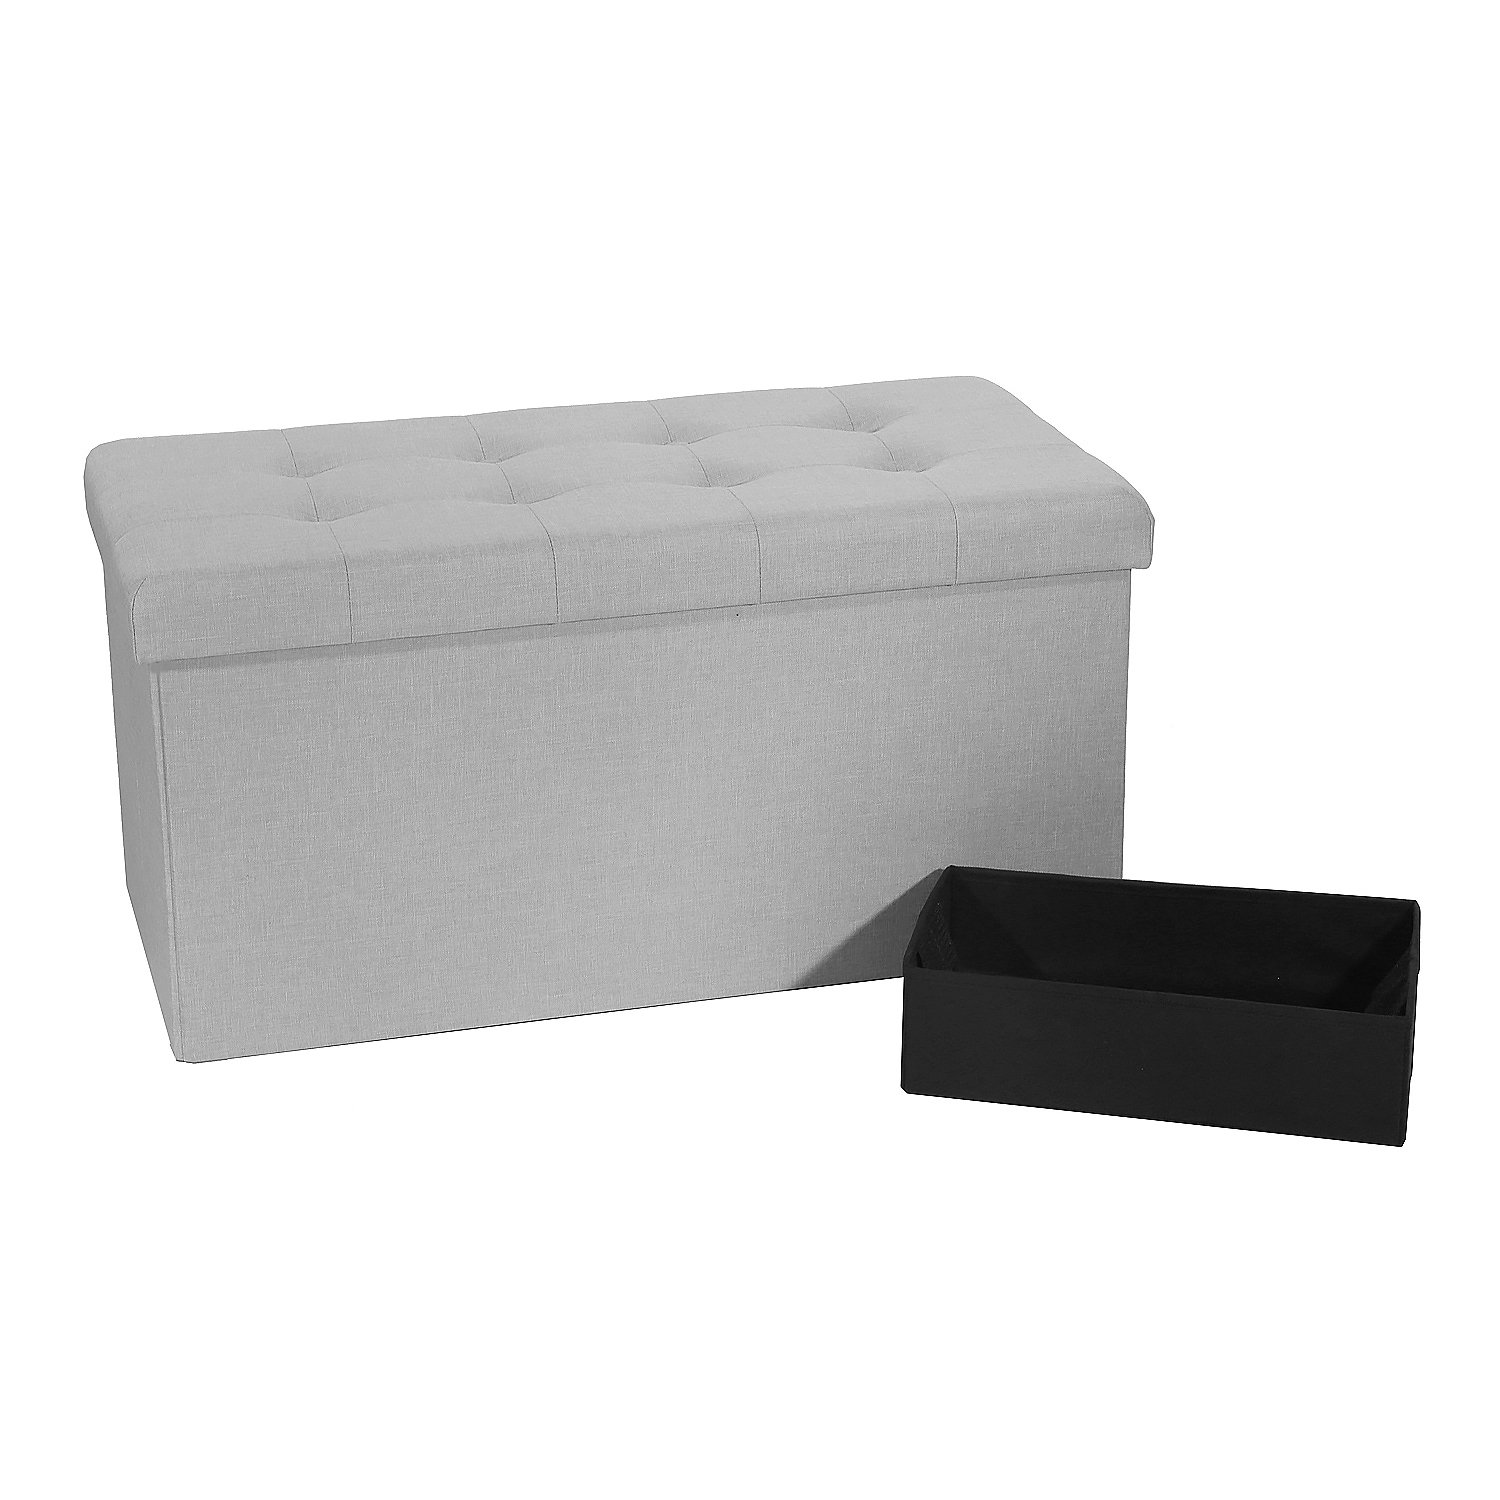 Seville Classics Foldable Tufted Storage Bench Ottoman, Alpine Gray by Seville Classics